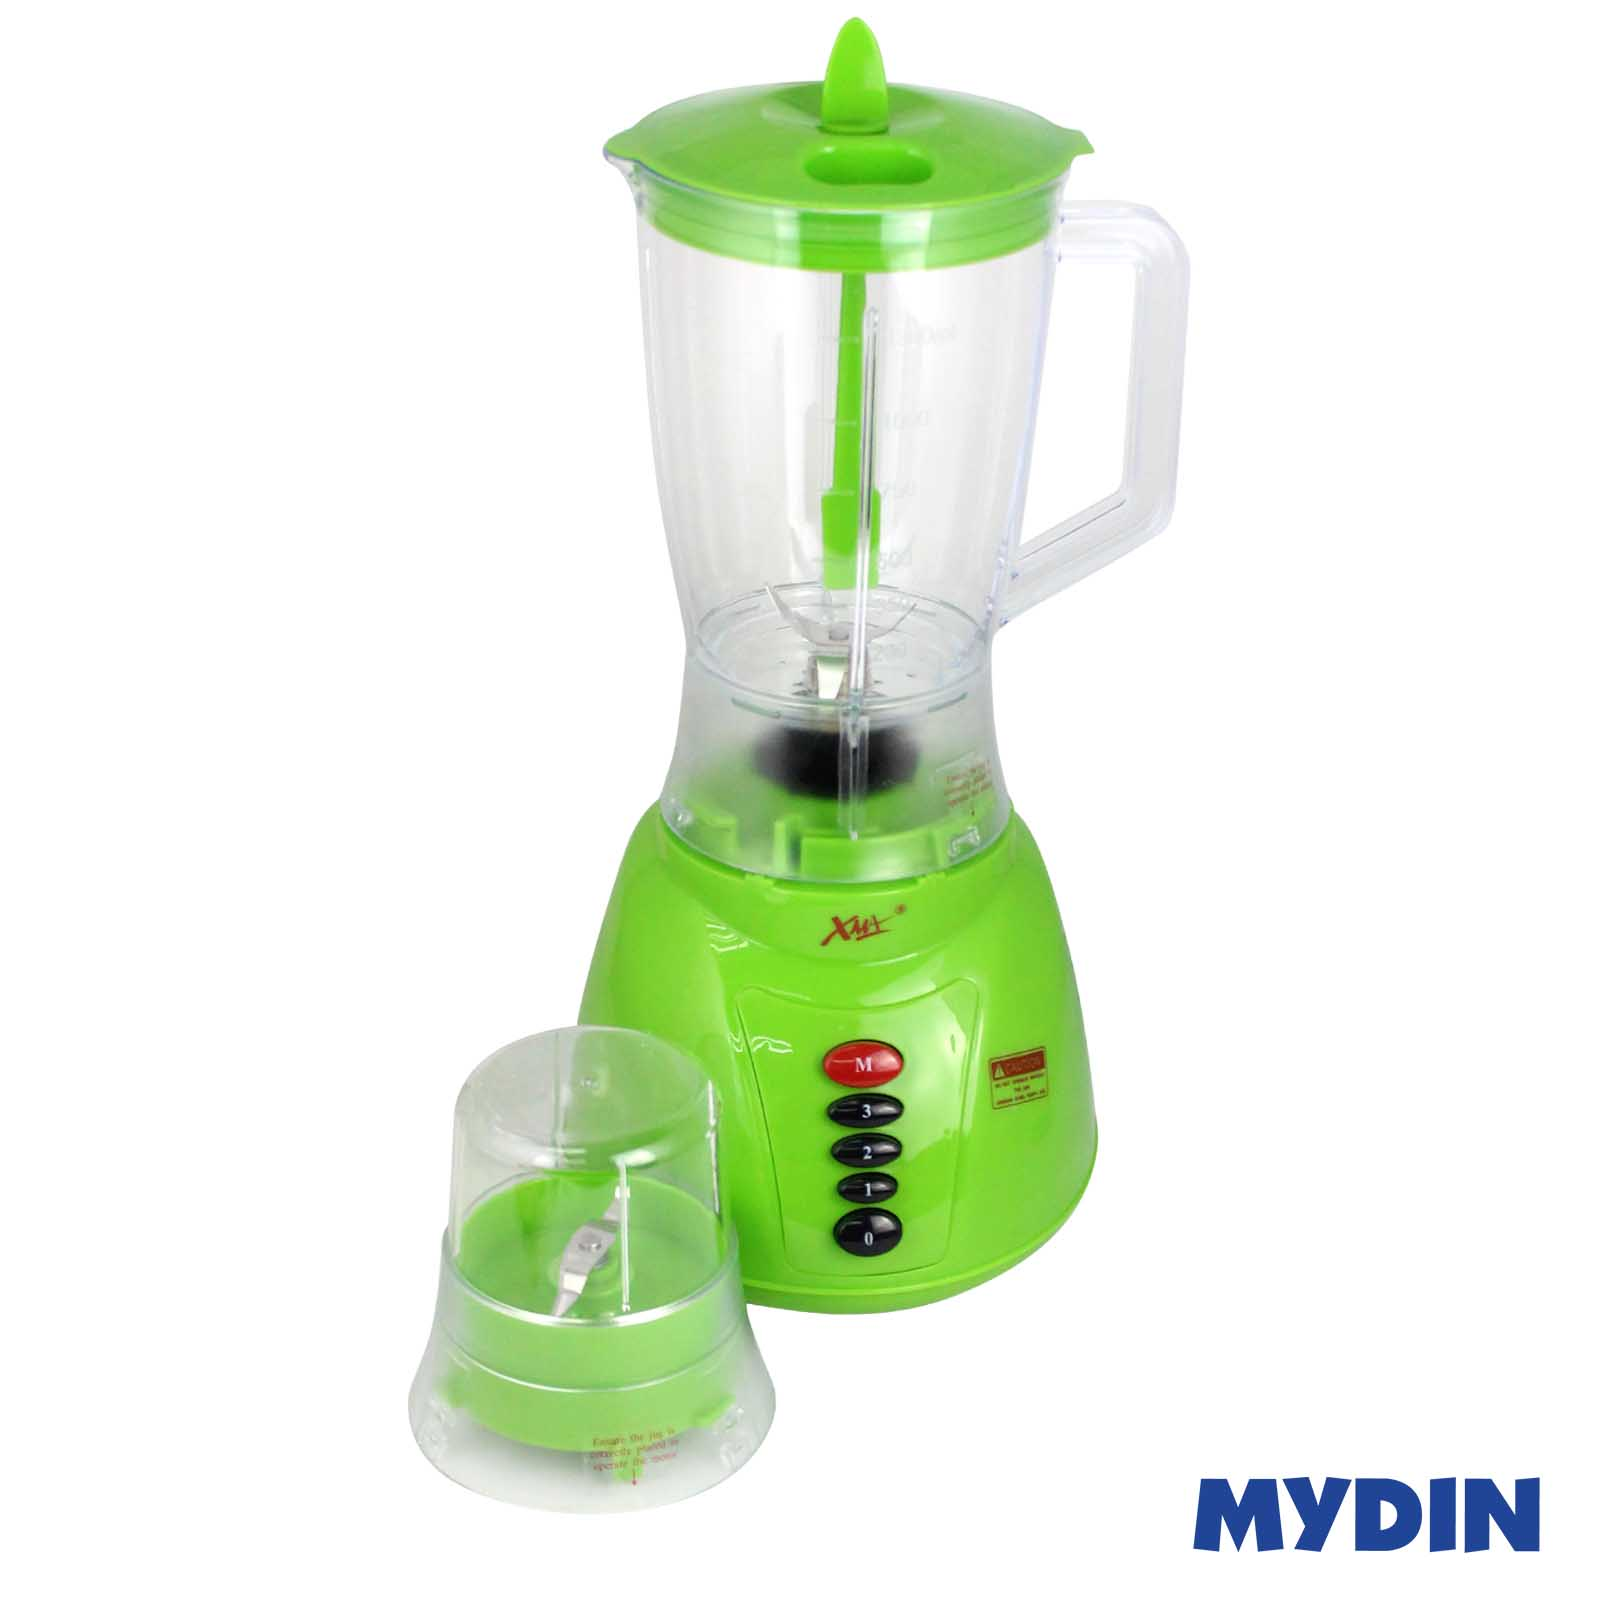 XMA Blender & Dry Mill 2-In-1 XMA 913